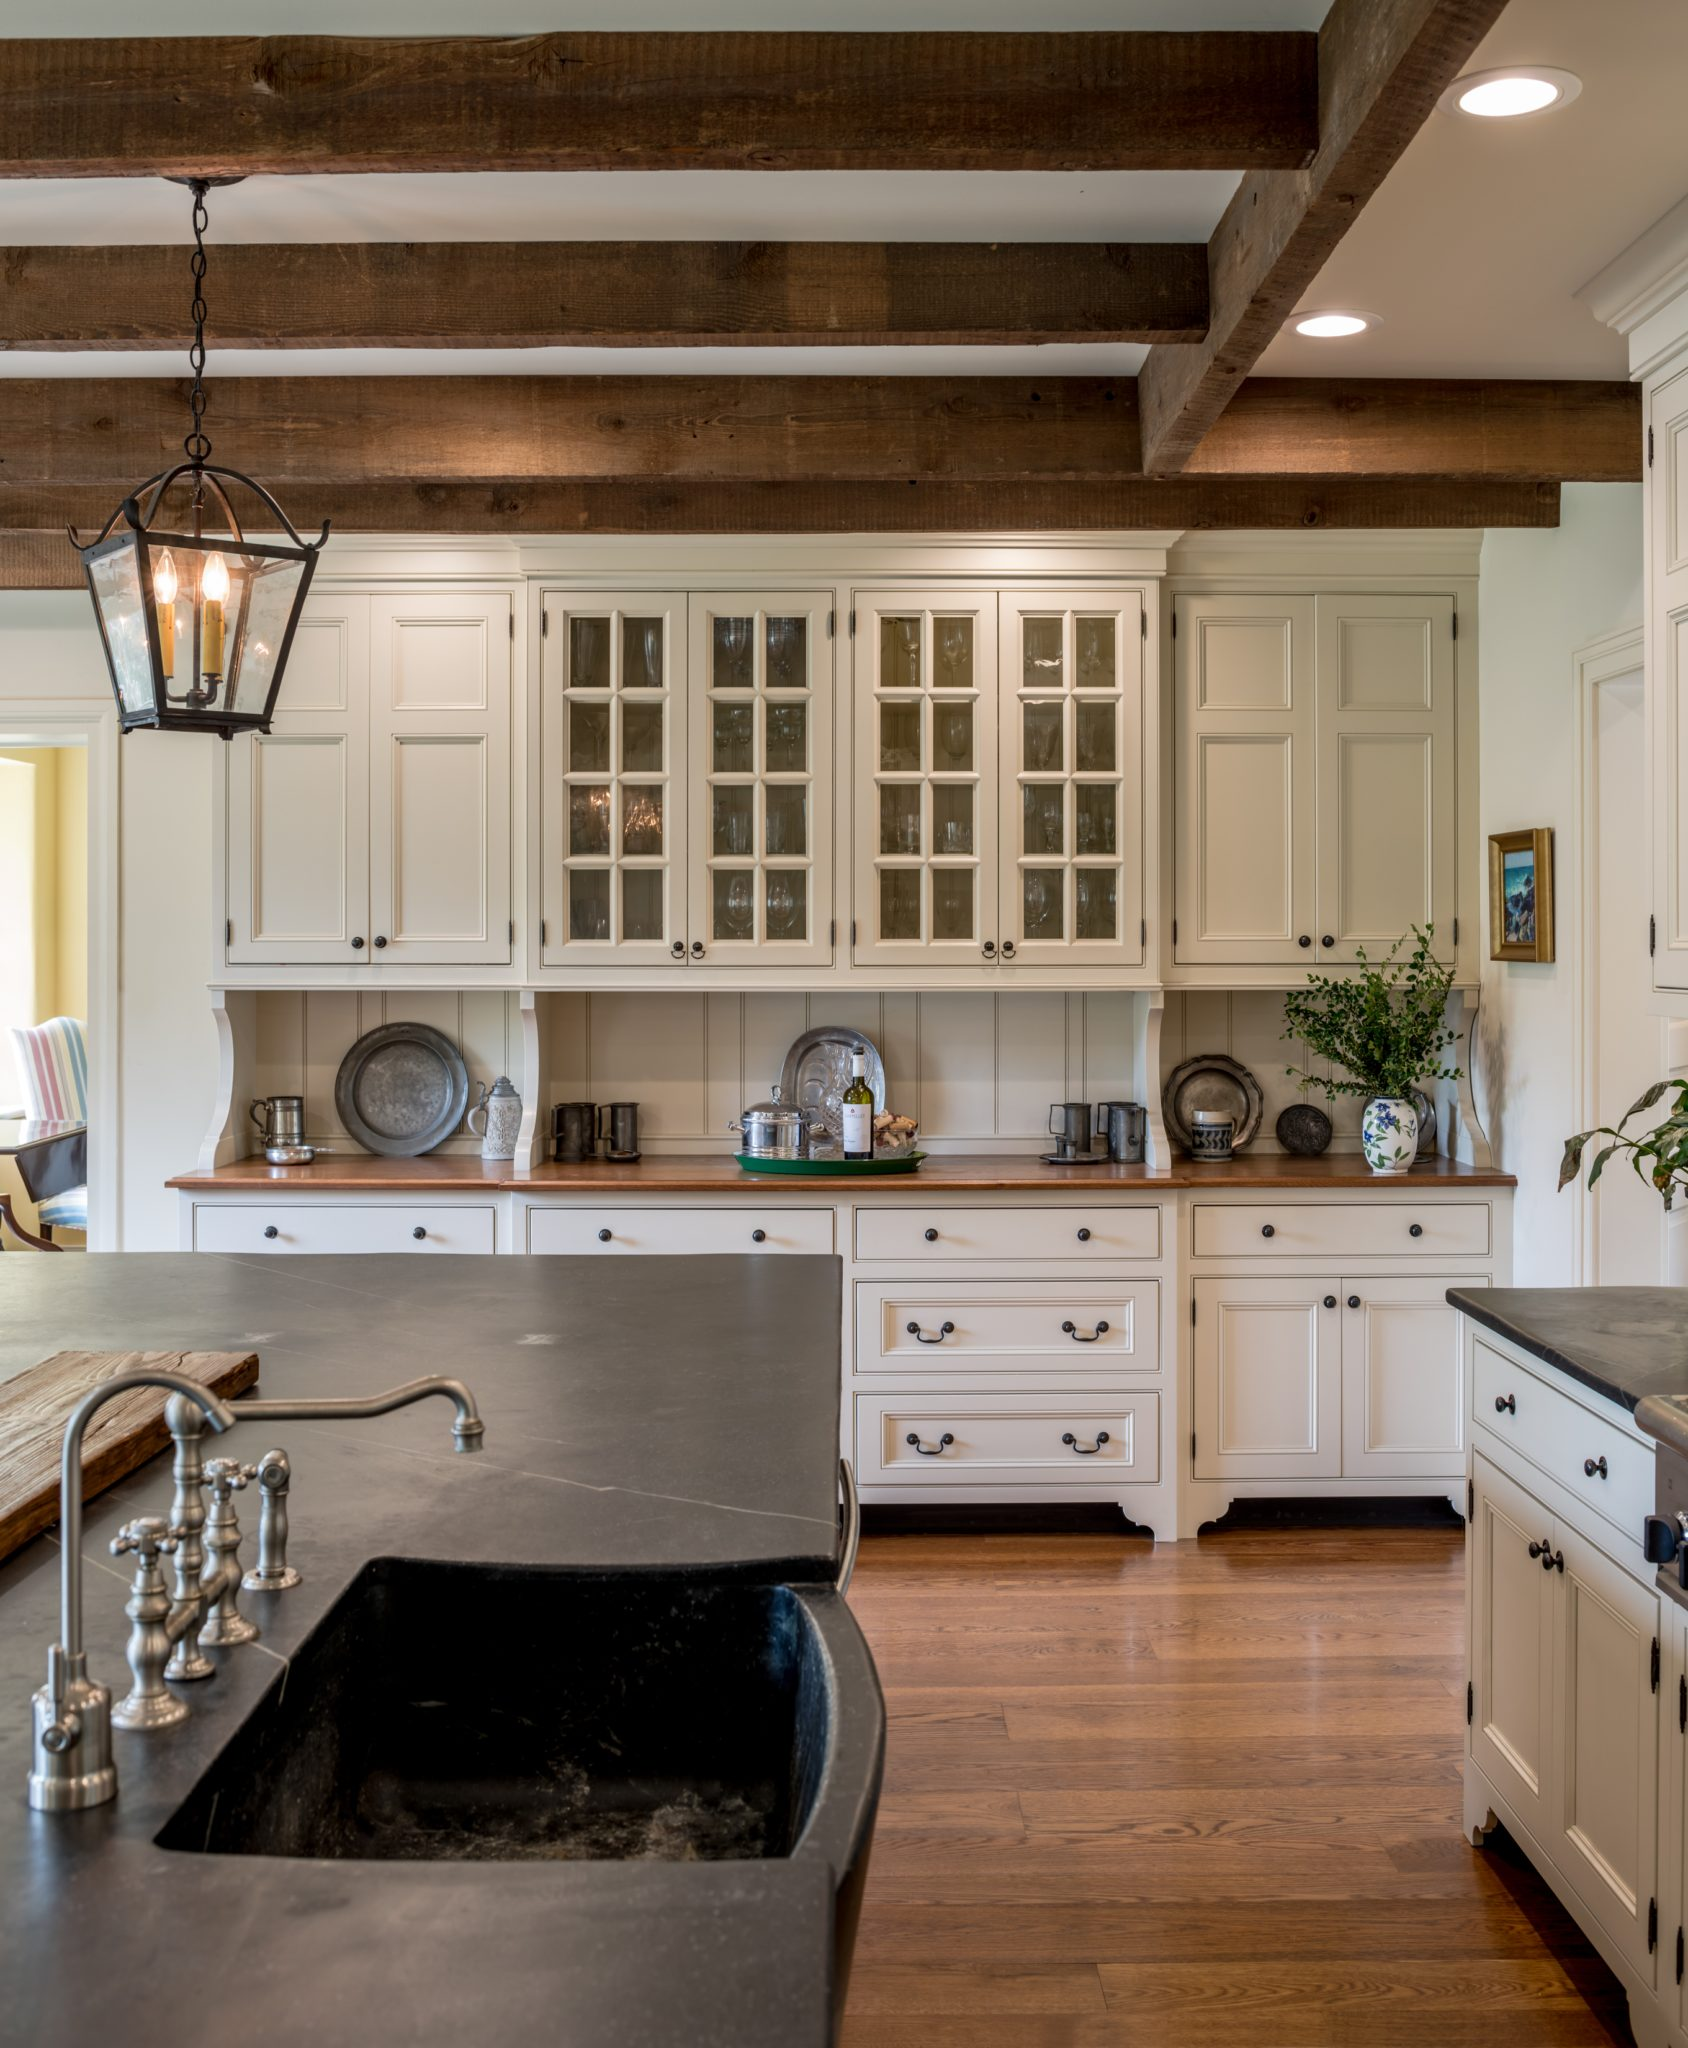 Open farmhouse kitchen with wood beams, display cabinetry & large central island by Period Architecture